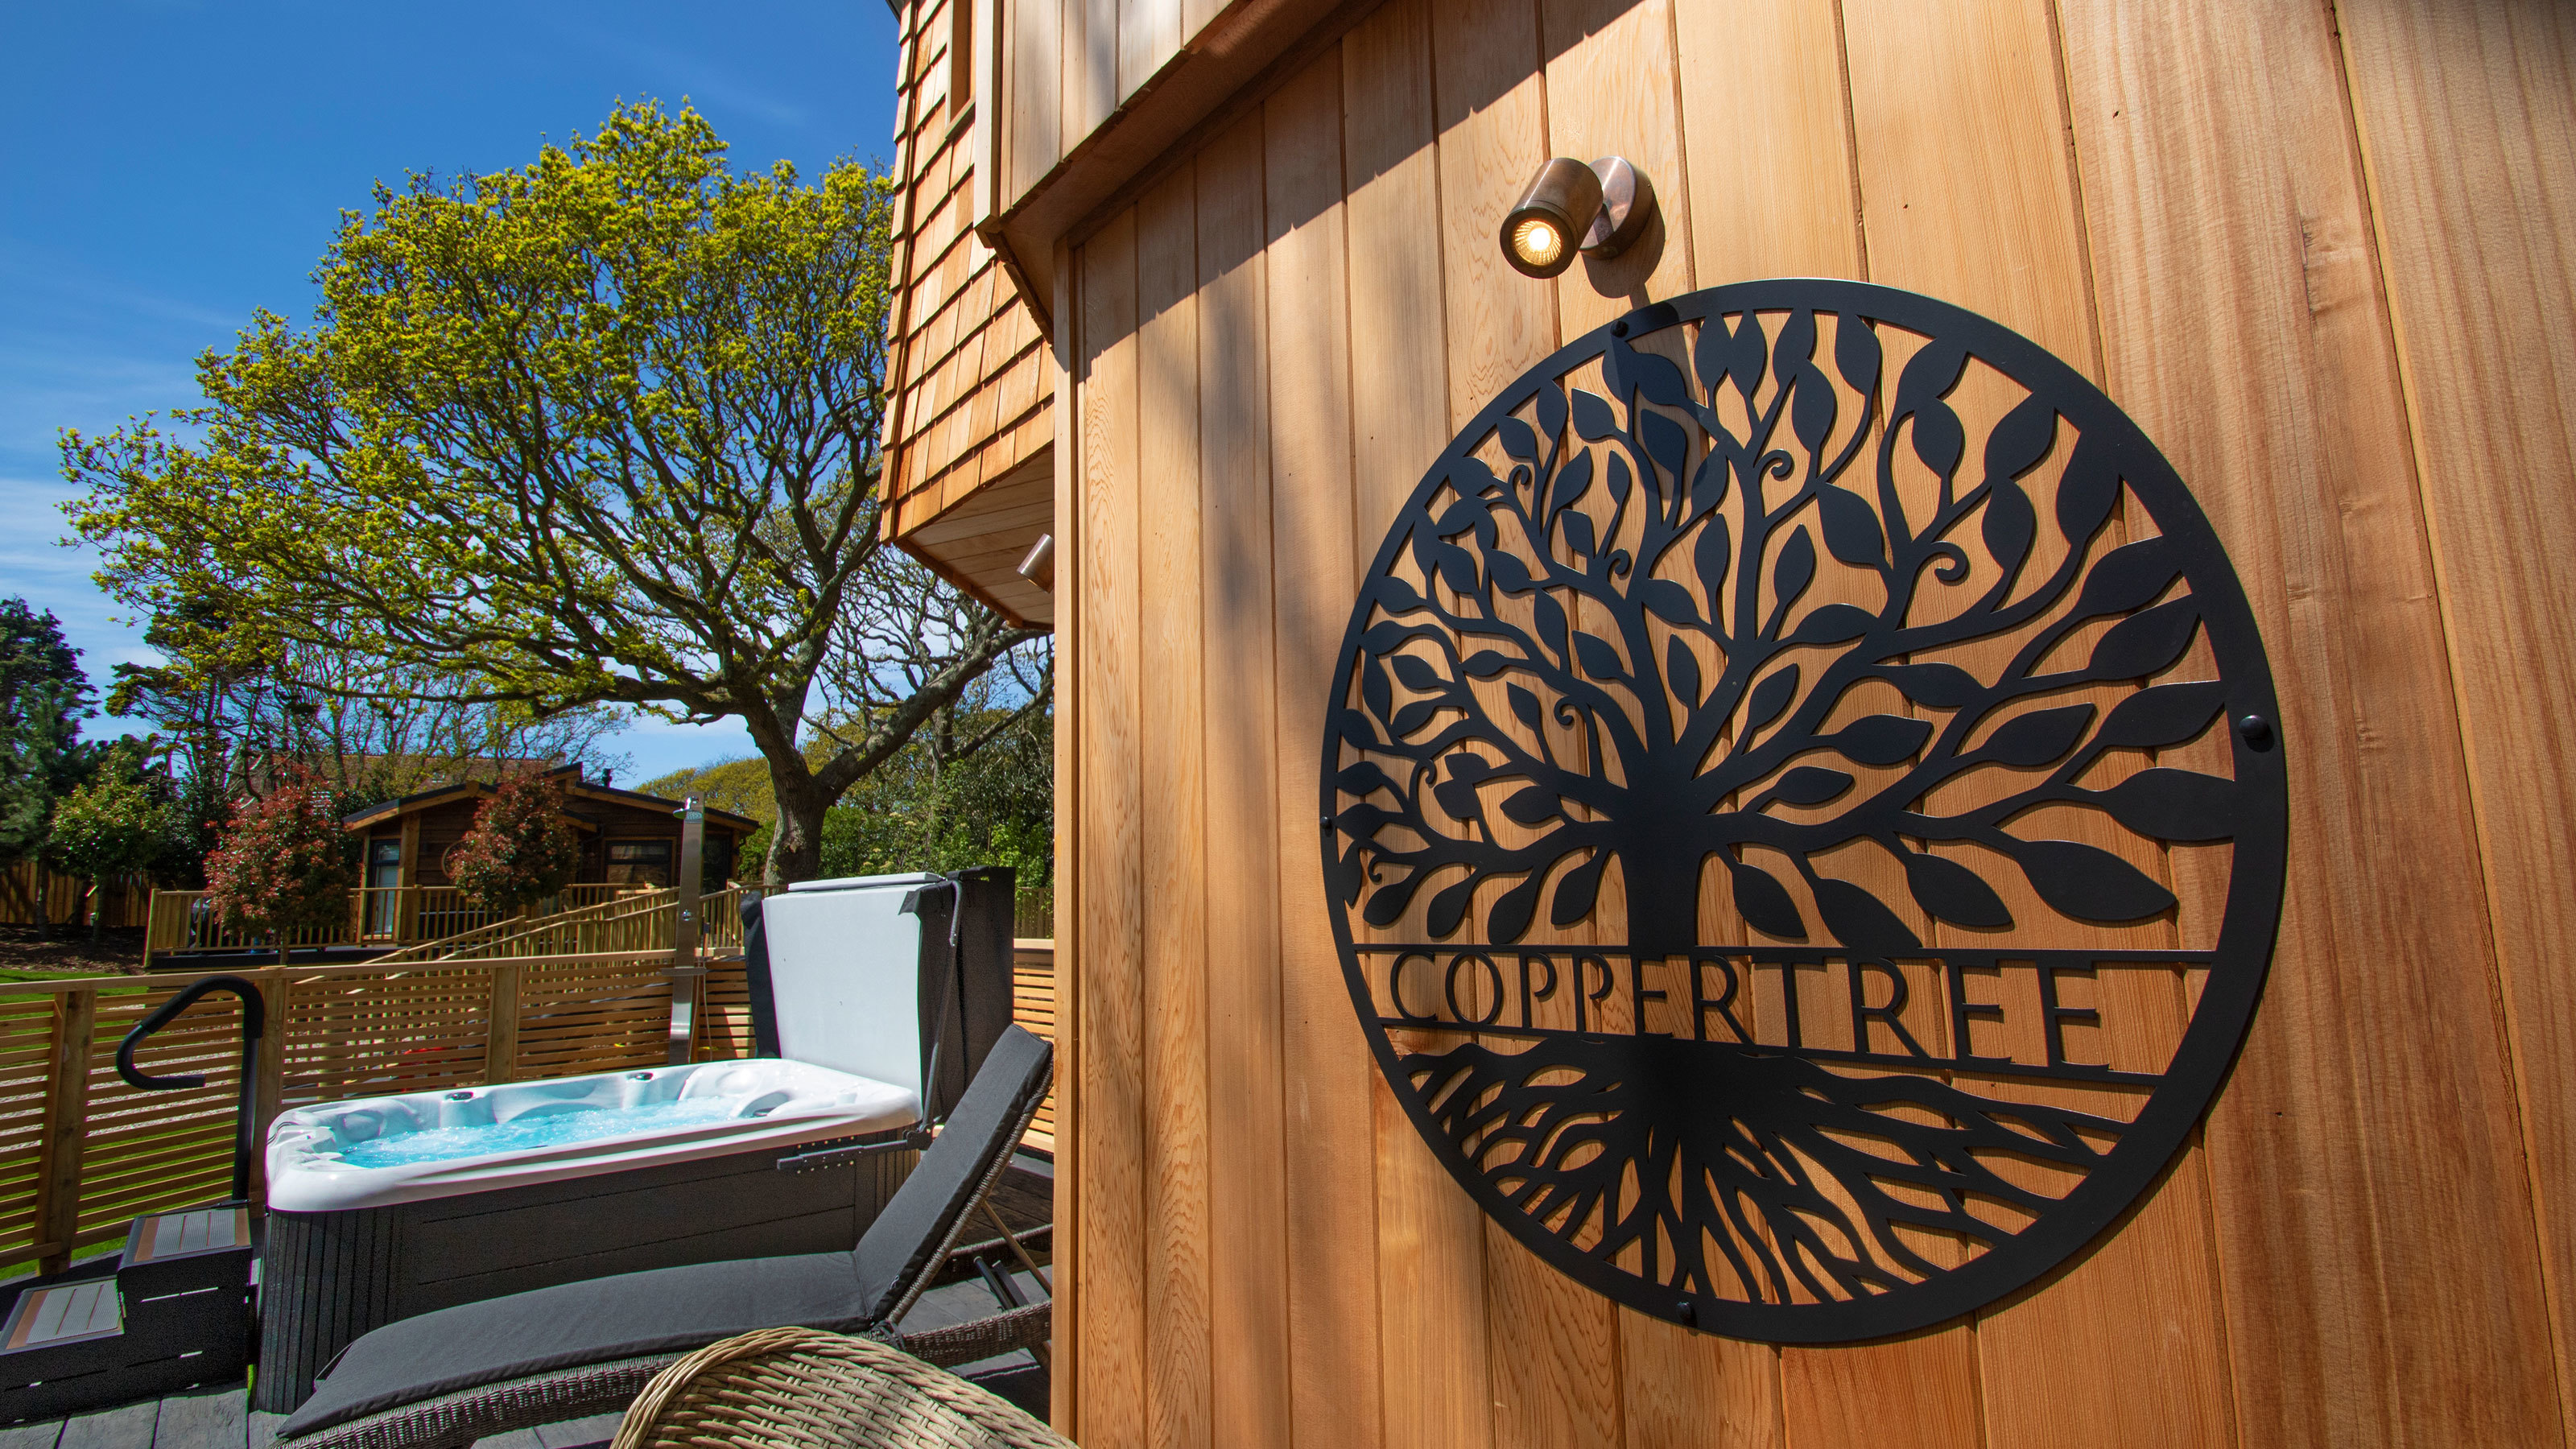 Coppertree sign on treehouse exterior with hot tub